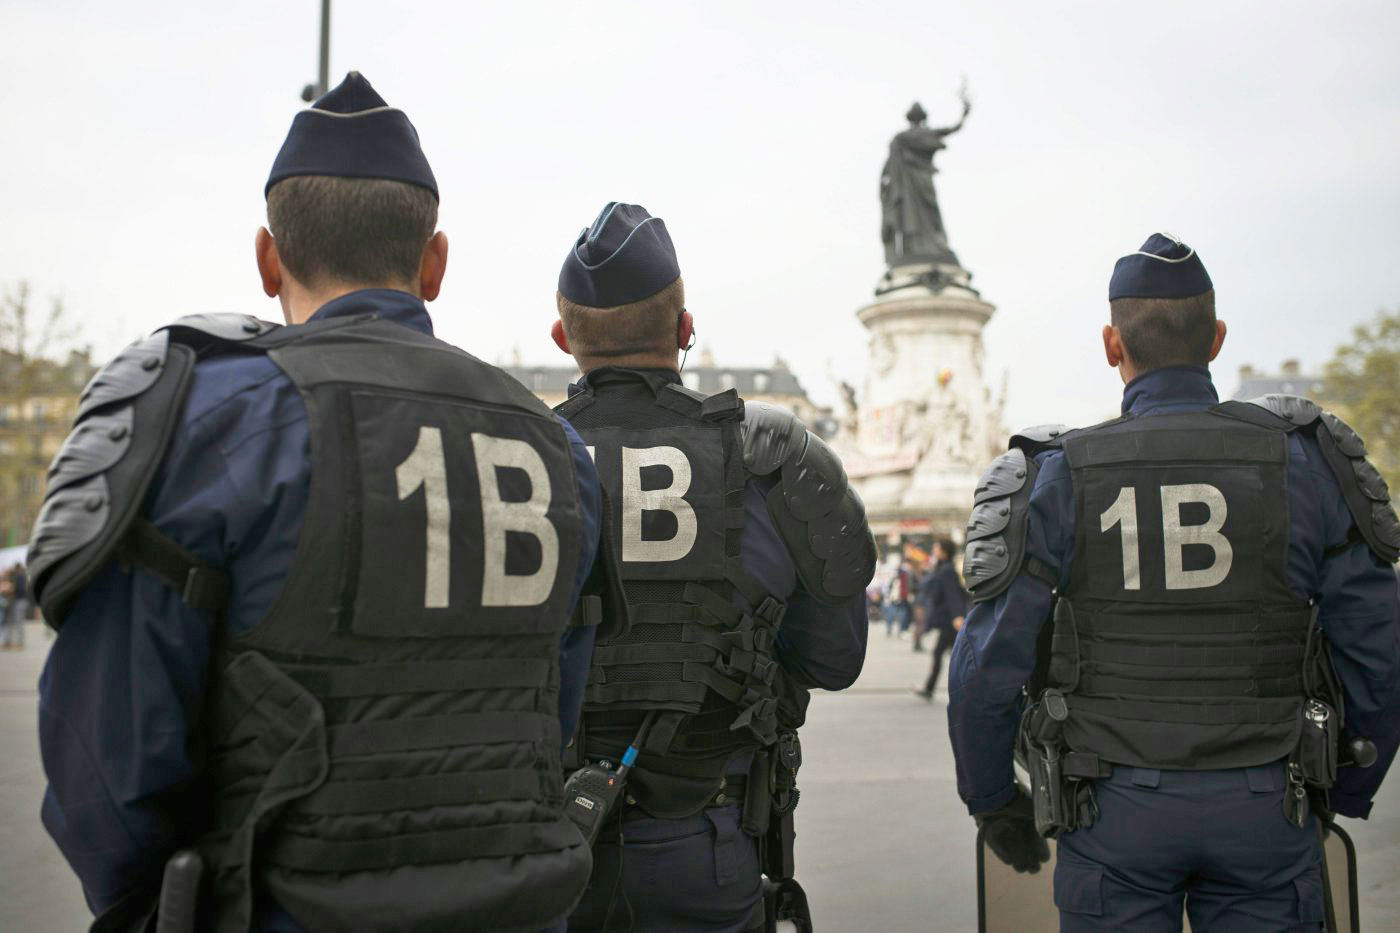 Paris police want drones to watch over crowds